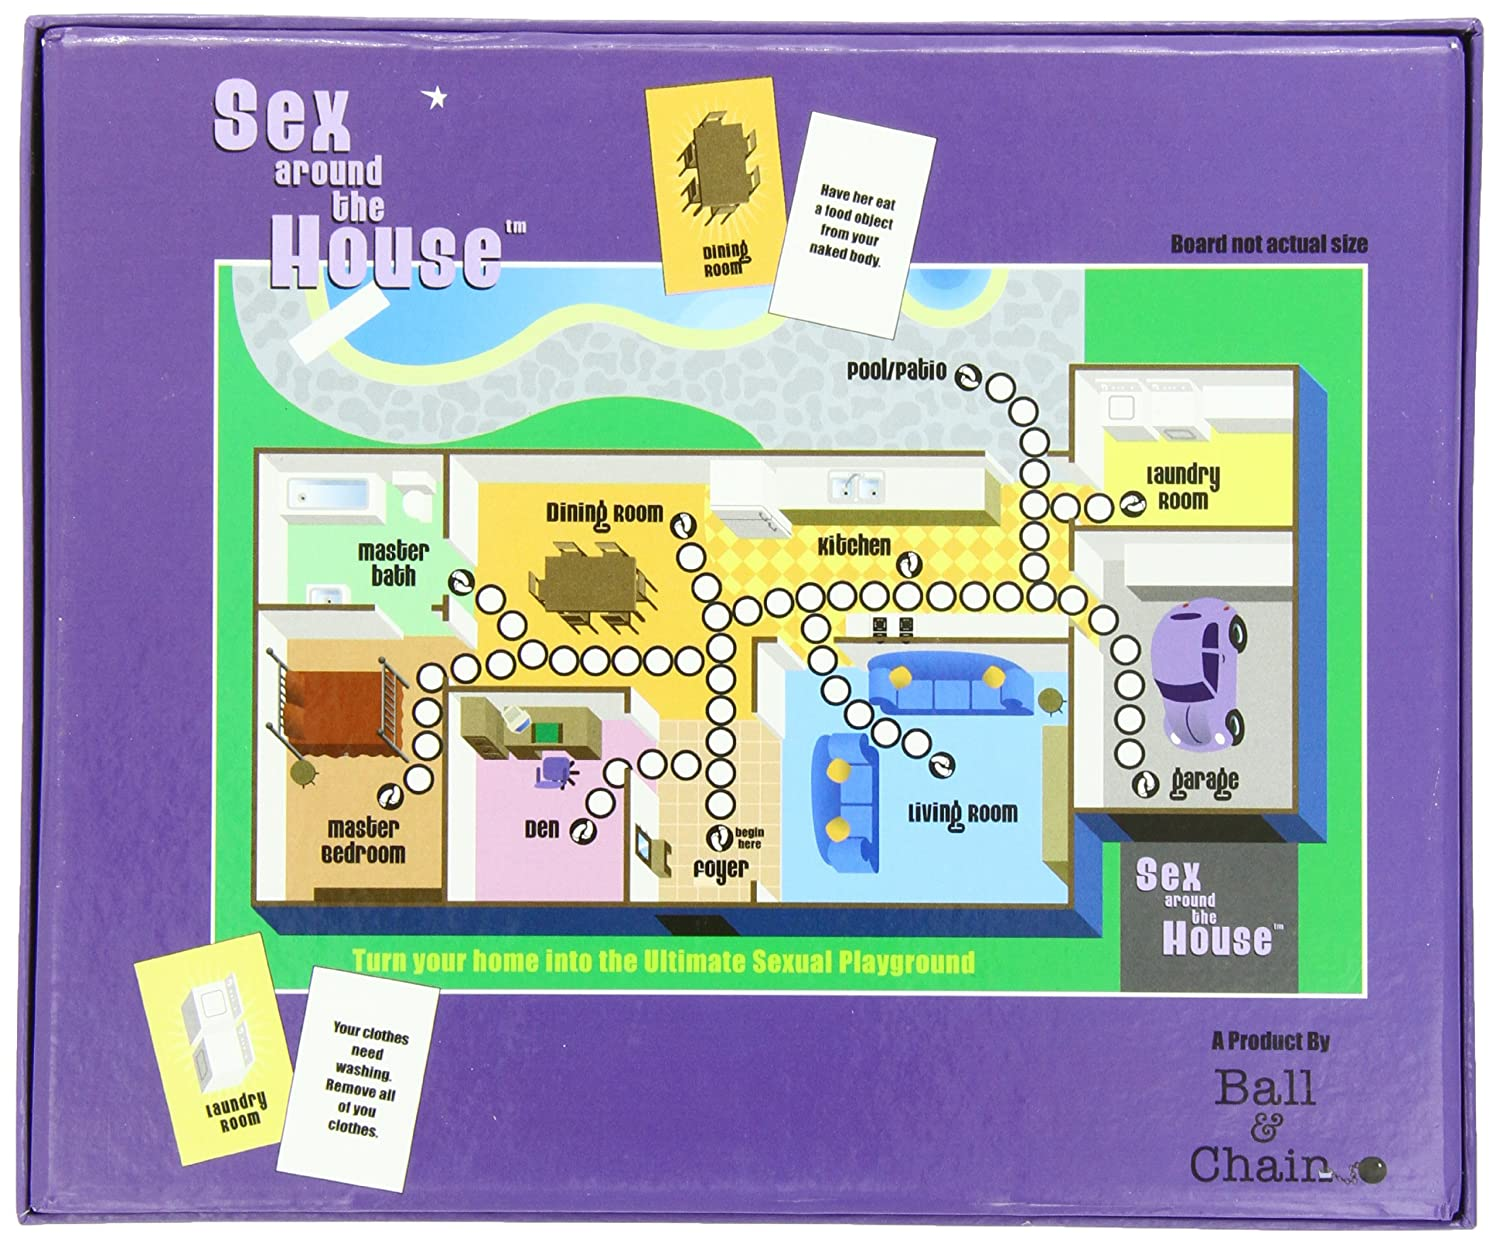 Around house sex